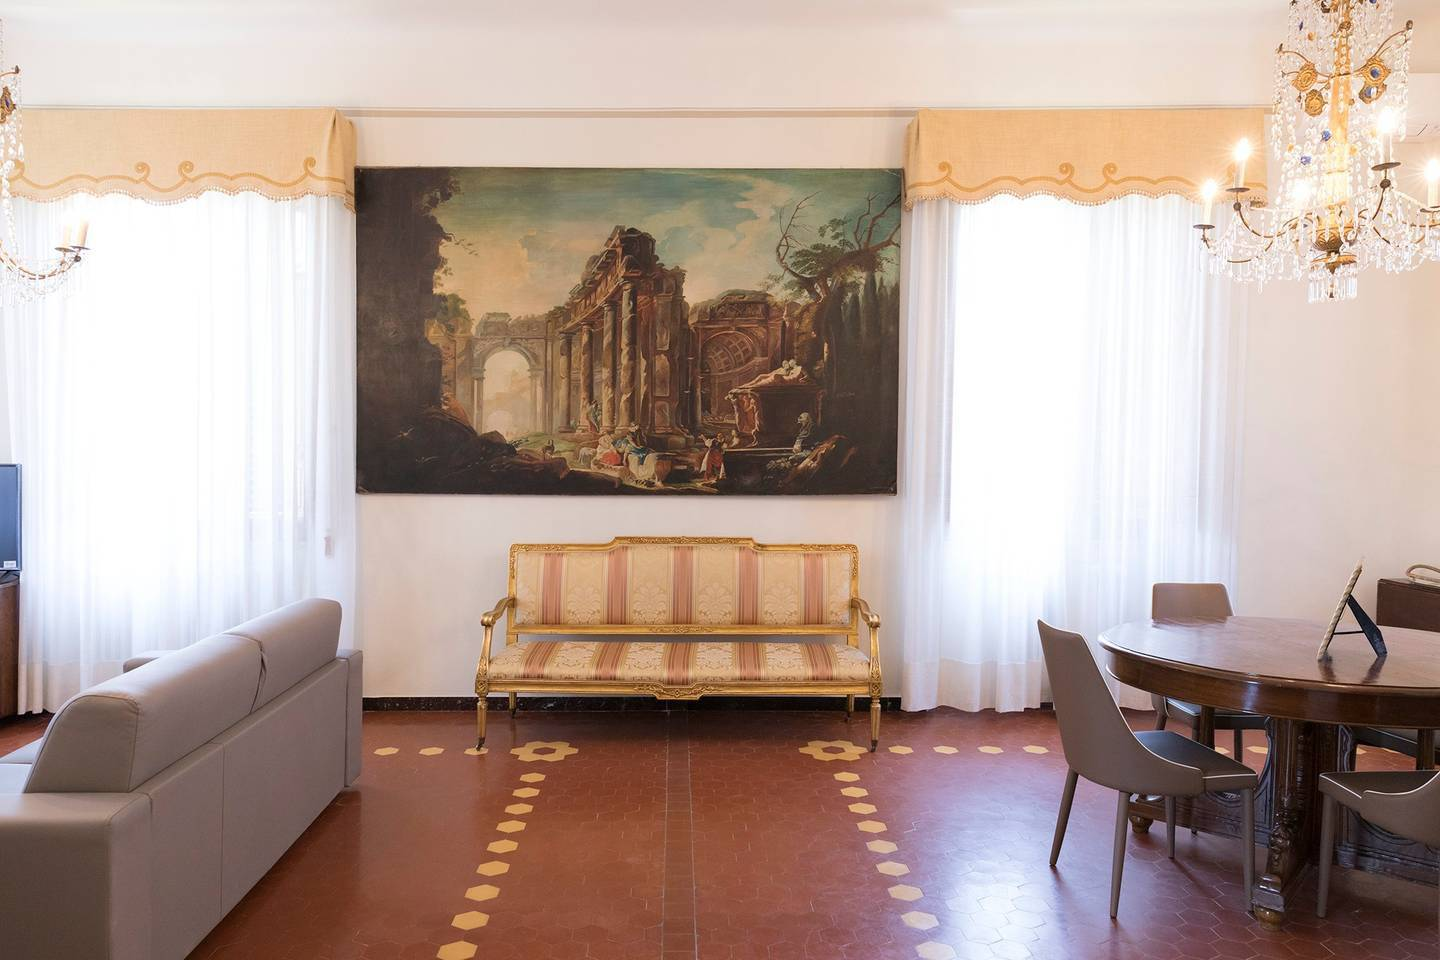 Hintown Villa Neri in front of the city wall photo 15905623